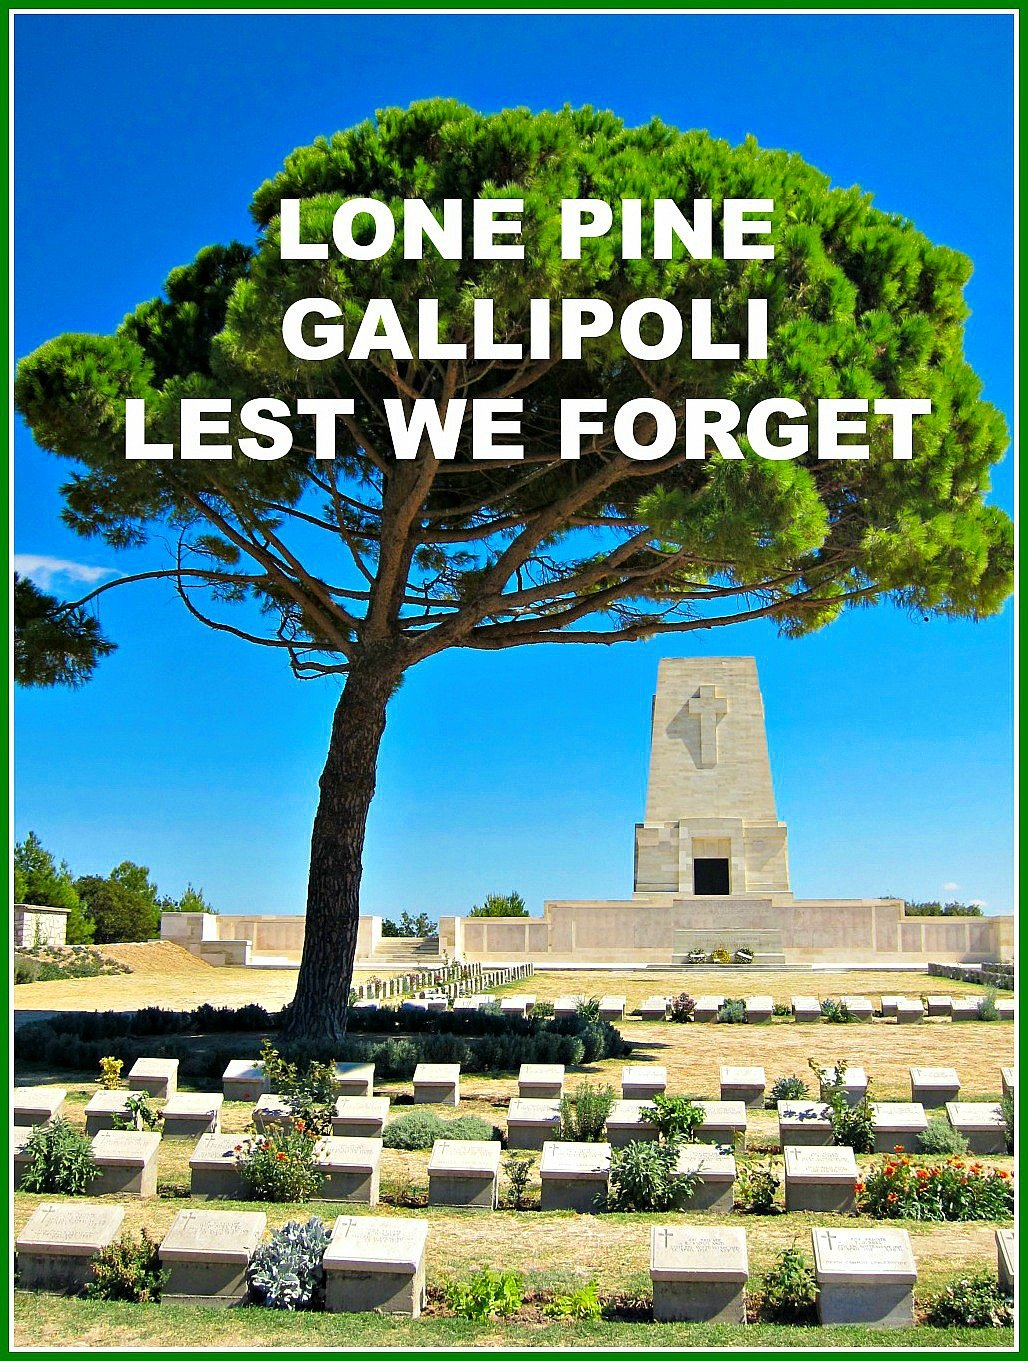 Lone Pine Gallipoli Lest We Forget